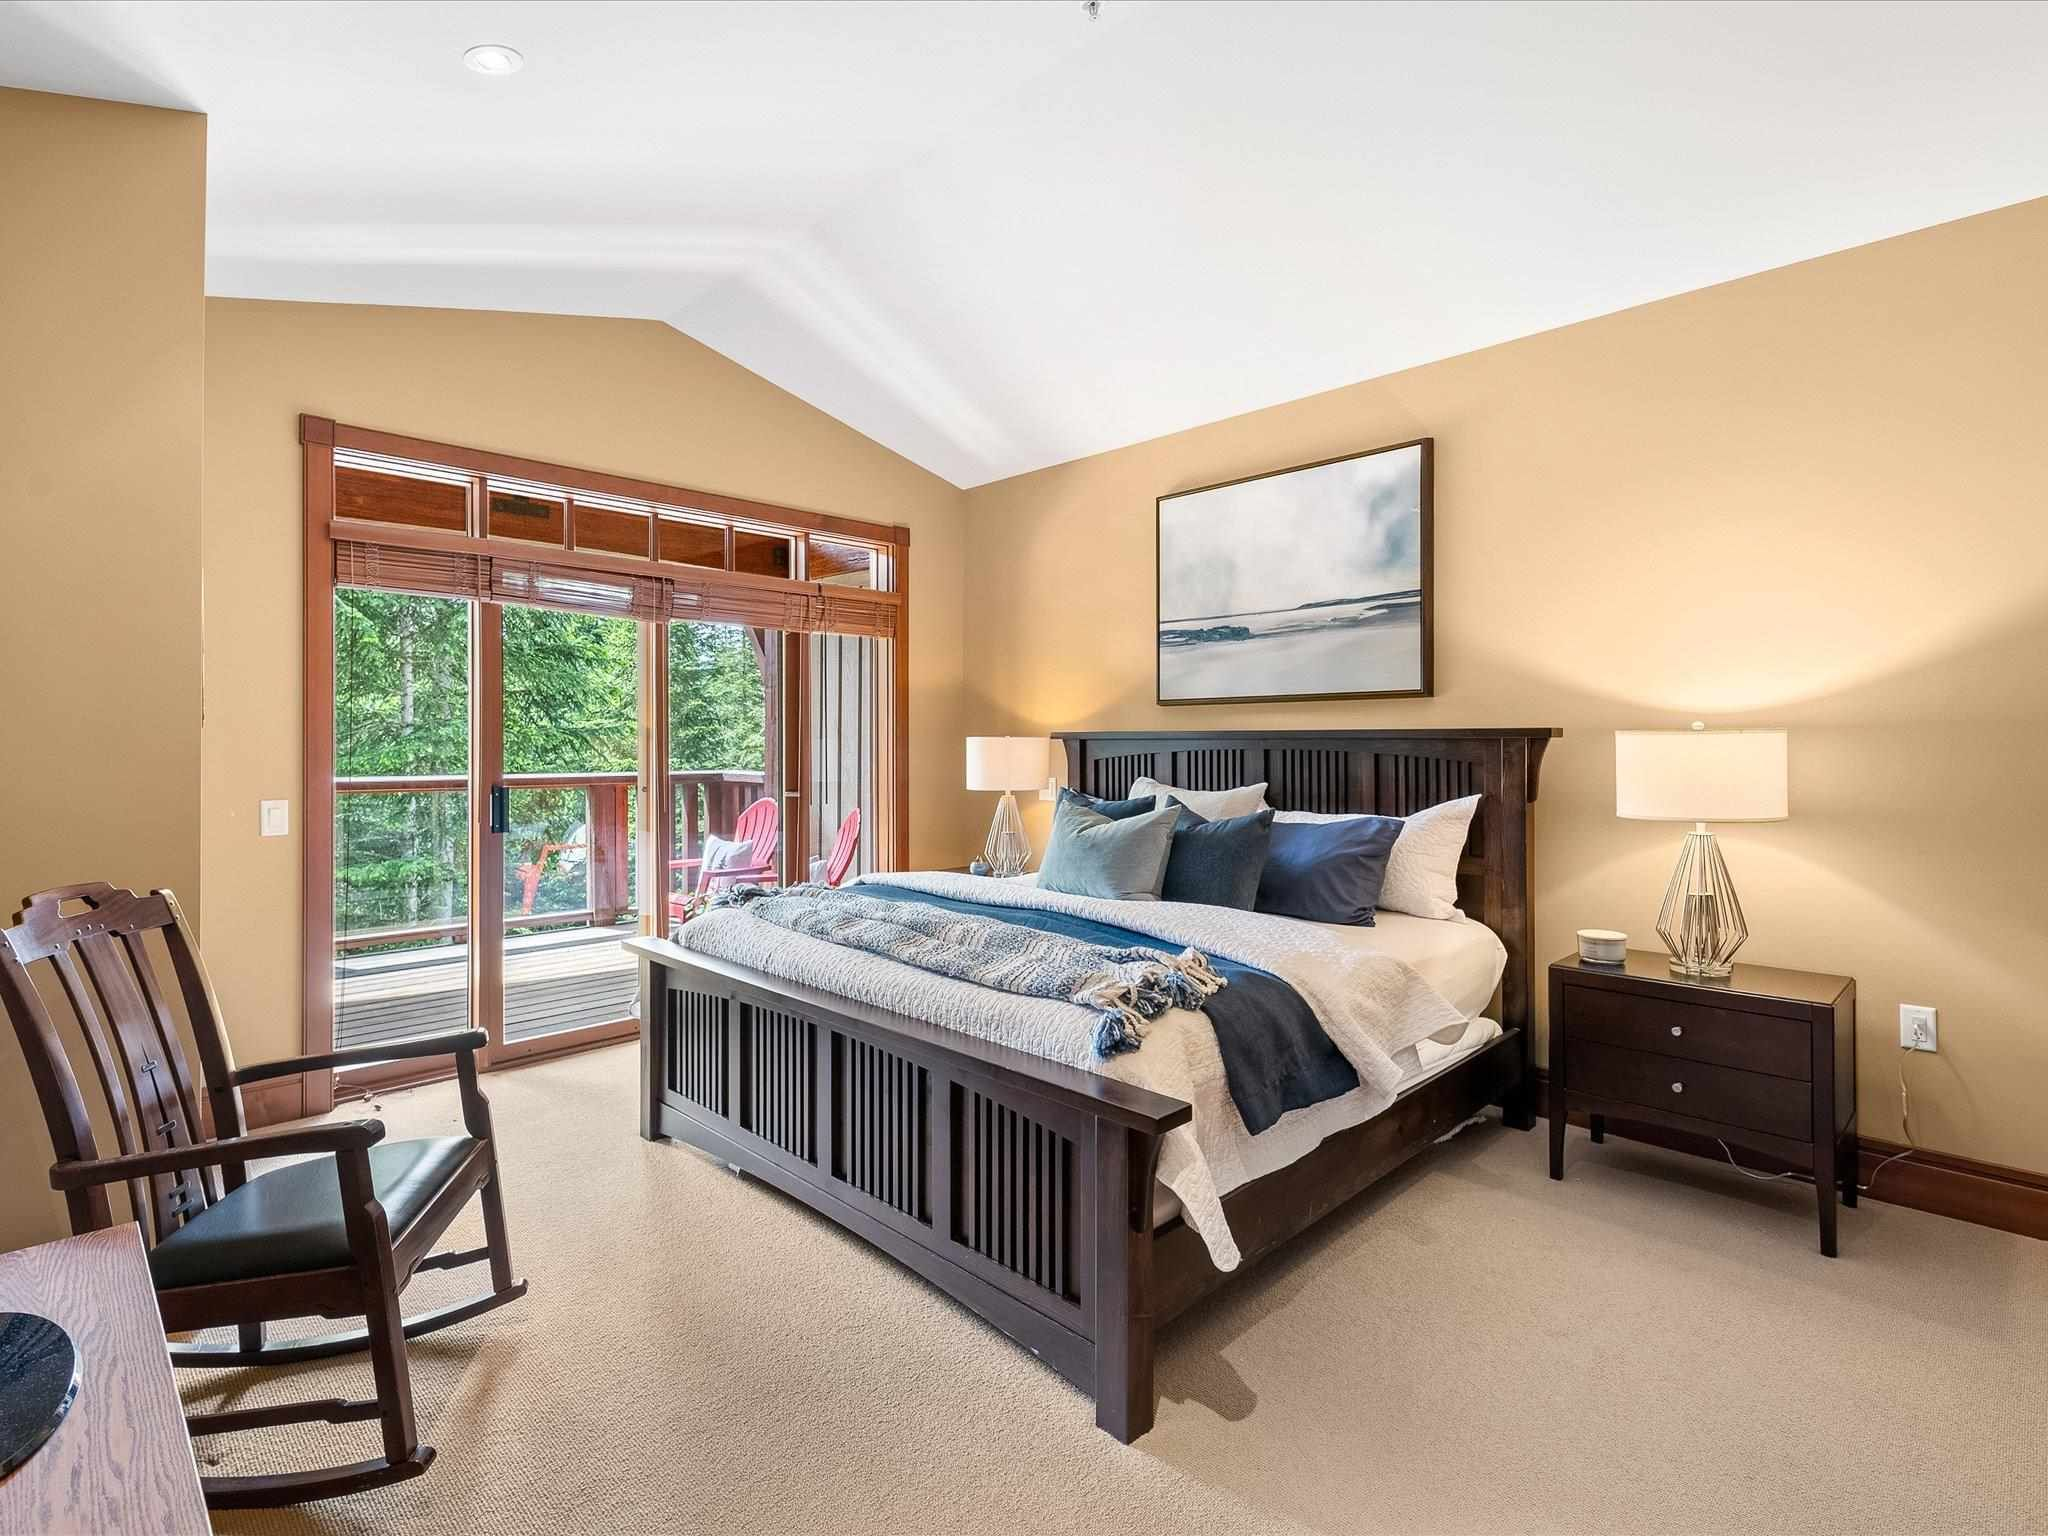 Photo 9: Photos: 4 2500 TALUSWOOD PLACE in Whistler: Nordic Townhouse for sale : MLS®# R2593995